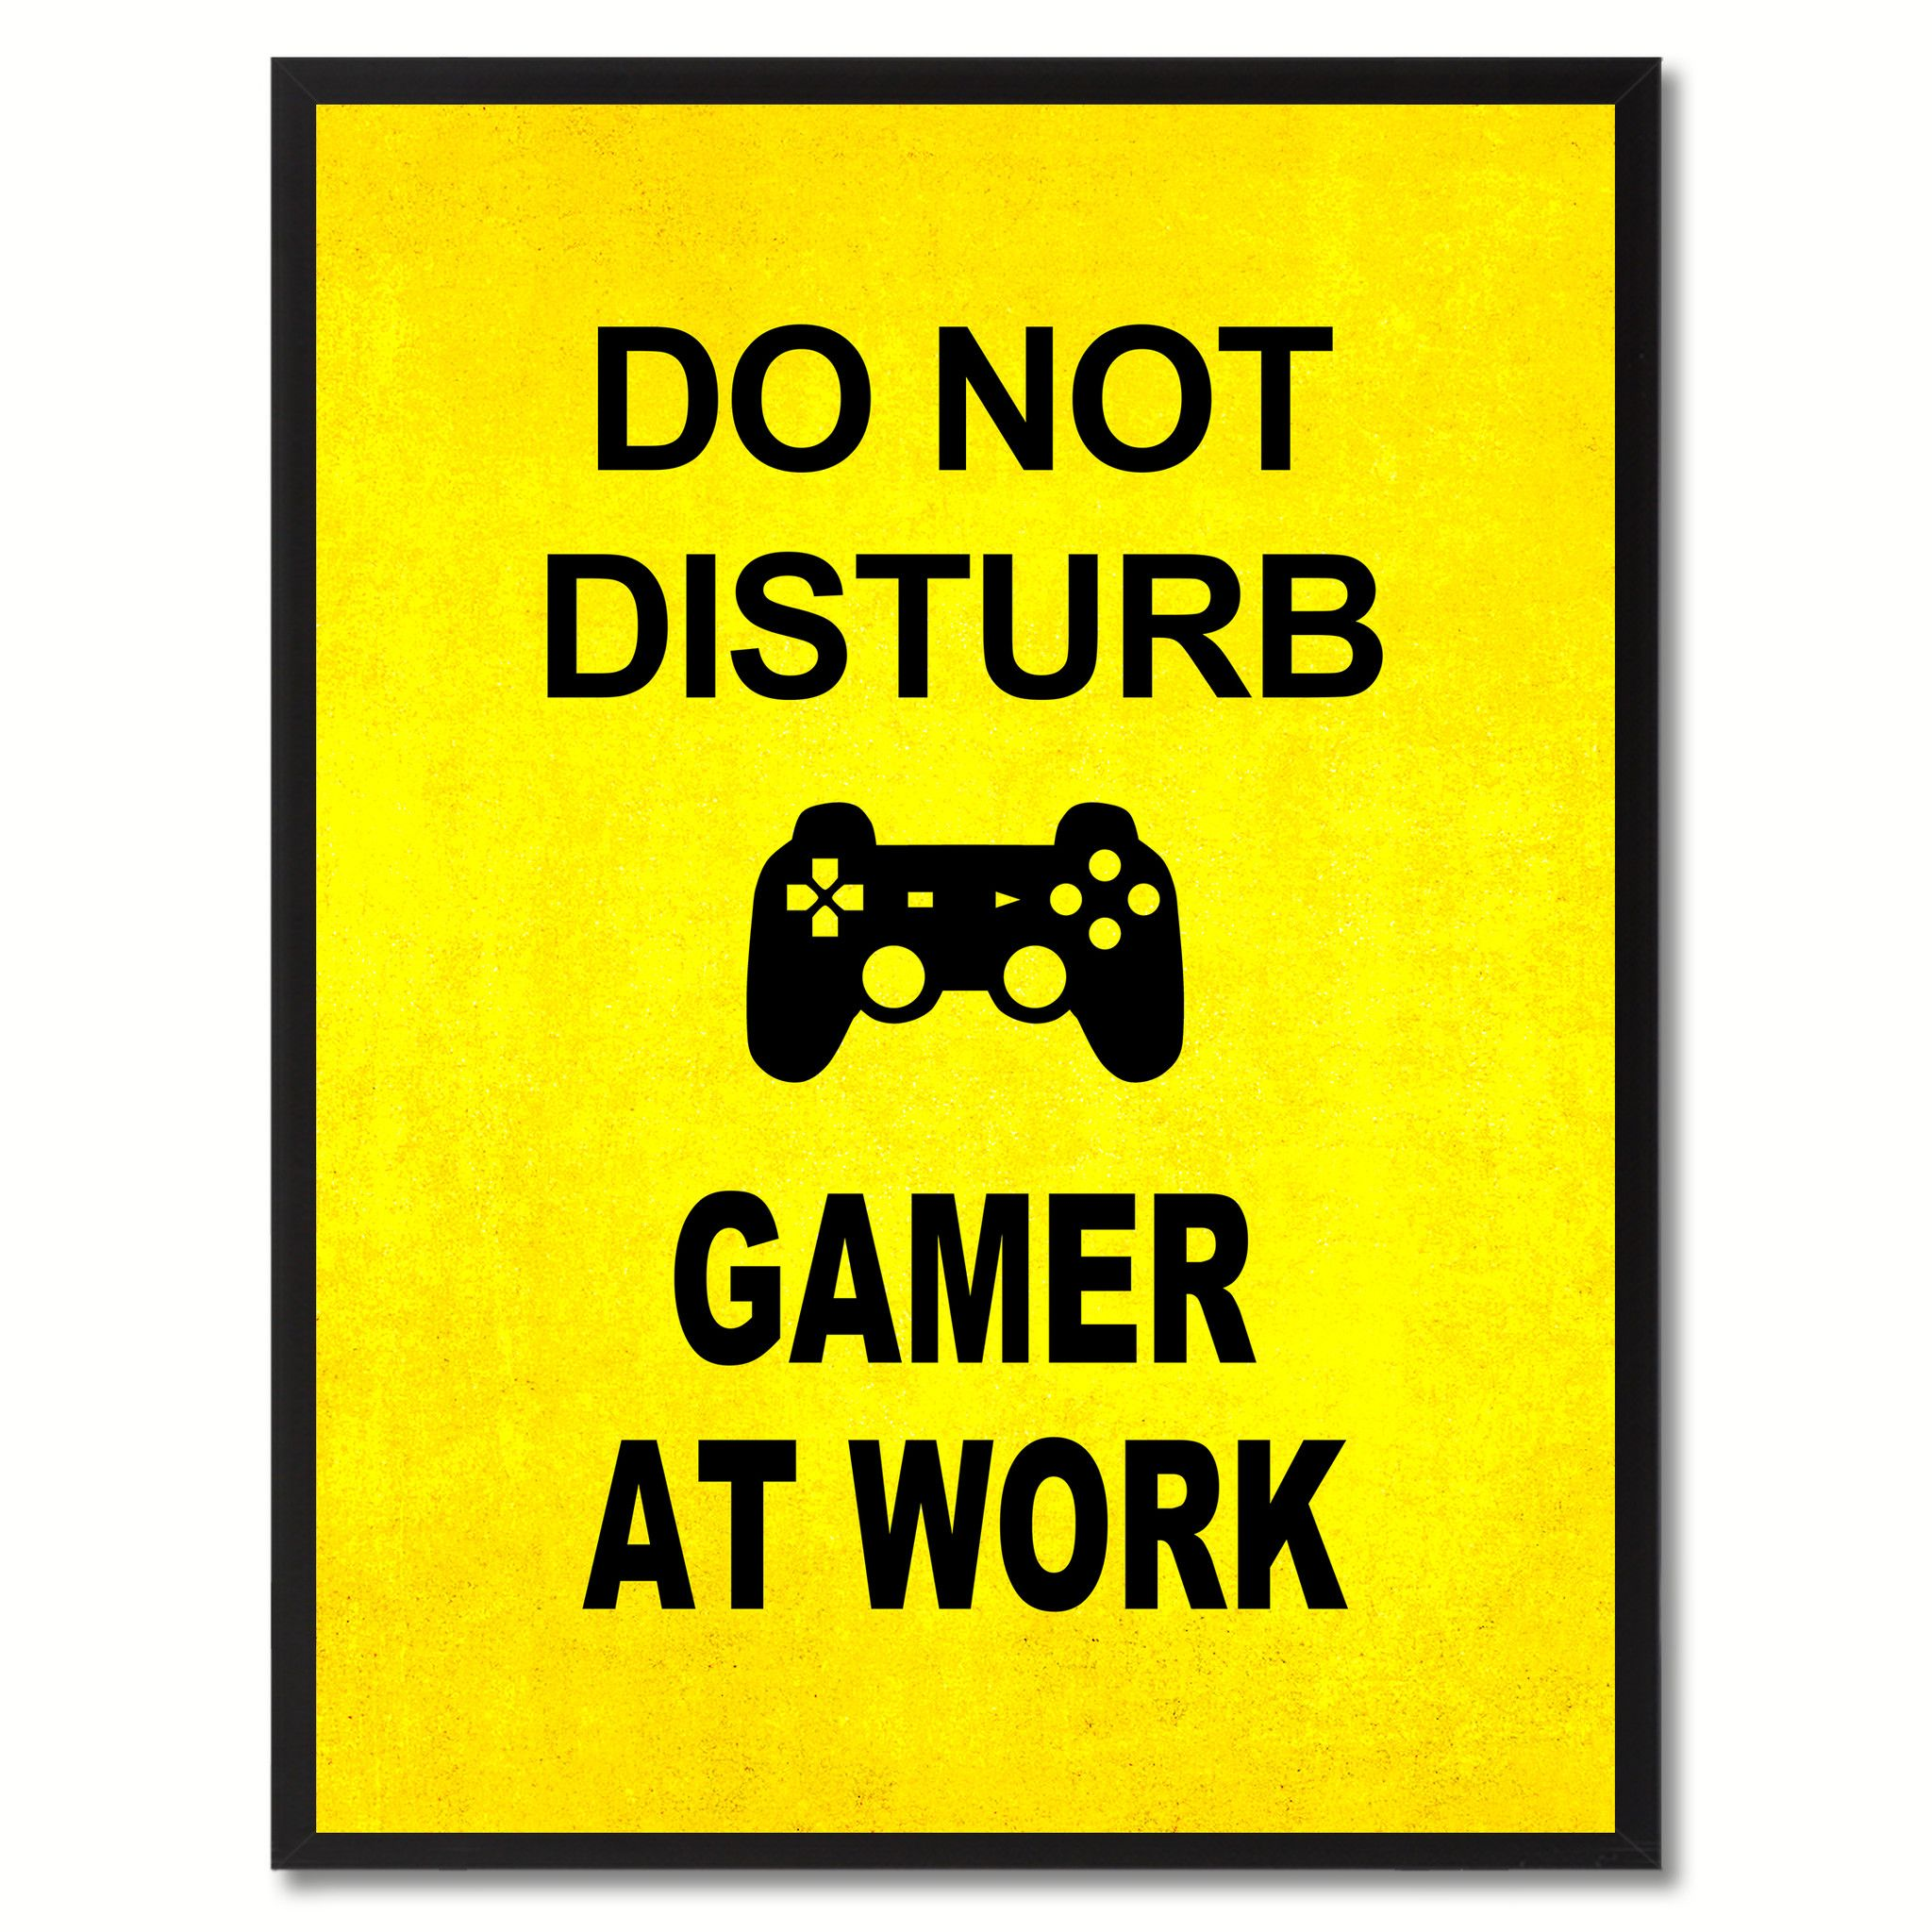 Don\'t Disturb Gamer Funny Sign Yellow Print on Canvas Picture Frames ...